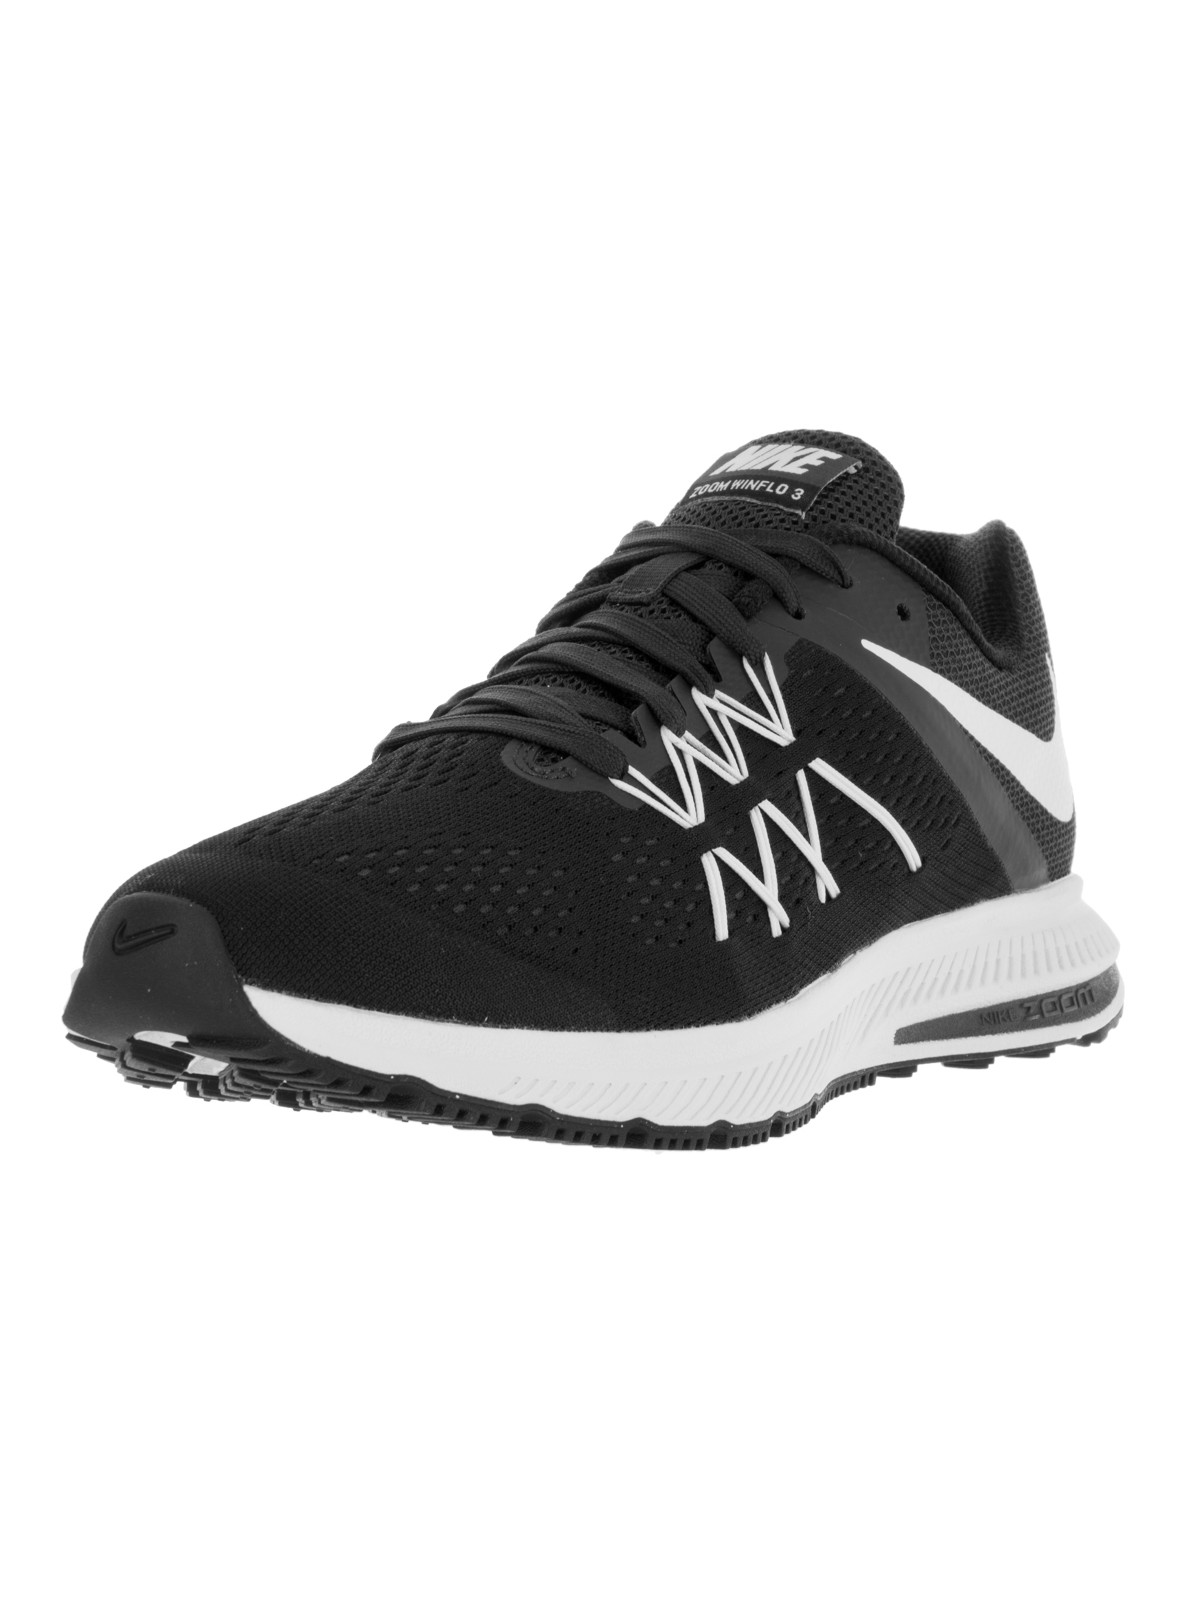 nike mens air zoom winflo 3 running shoe black/white-anthracite 11 d(m) us